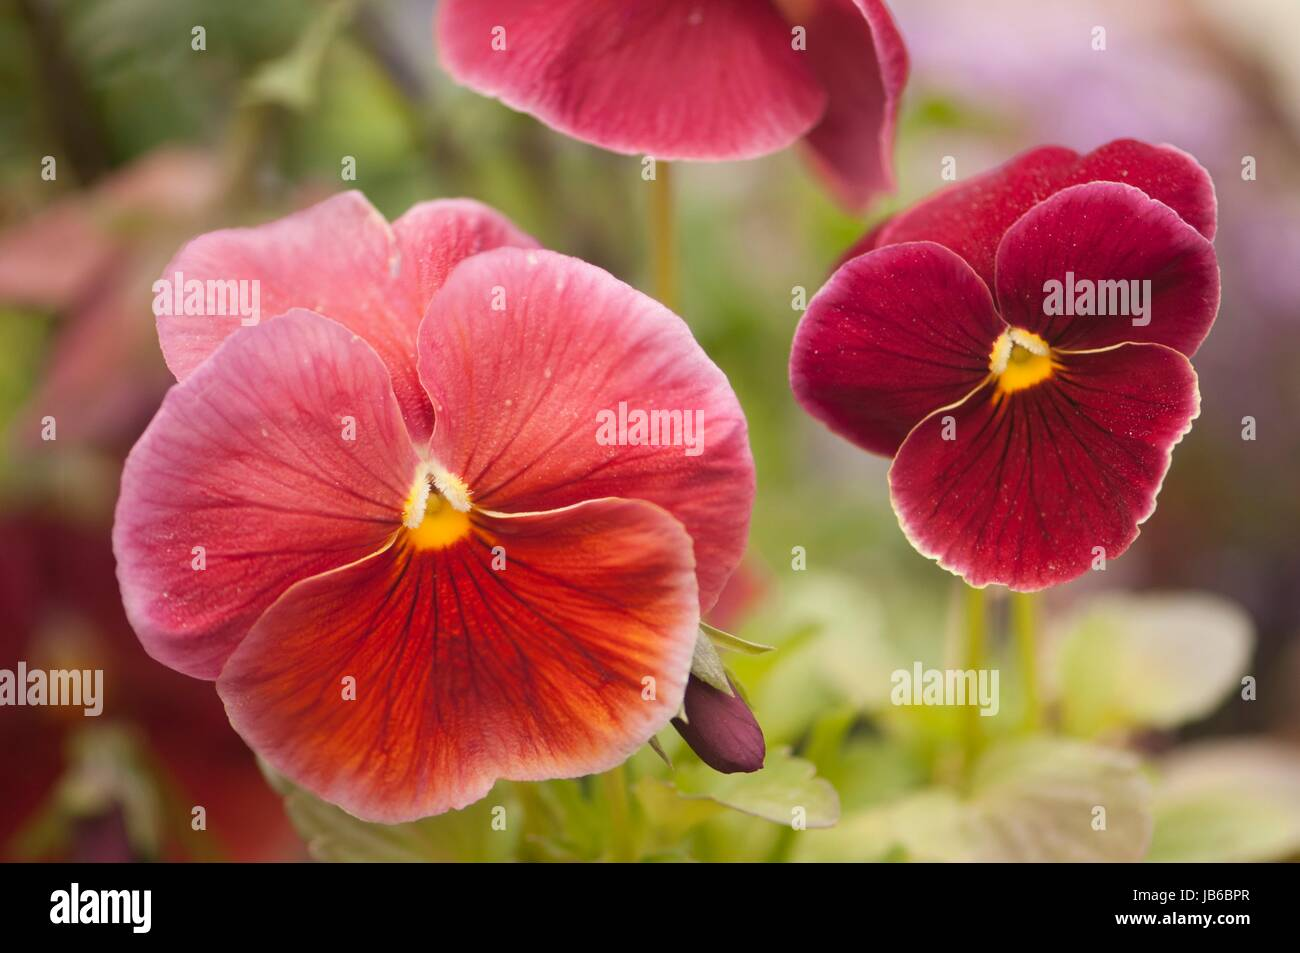 Red pansy (Viola x wittrockiana) flowers. - Stock Image